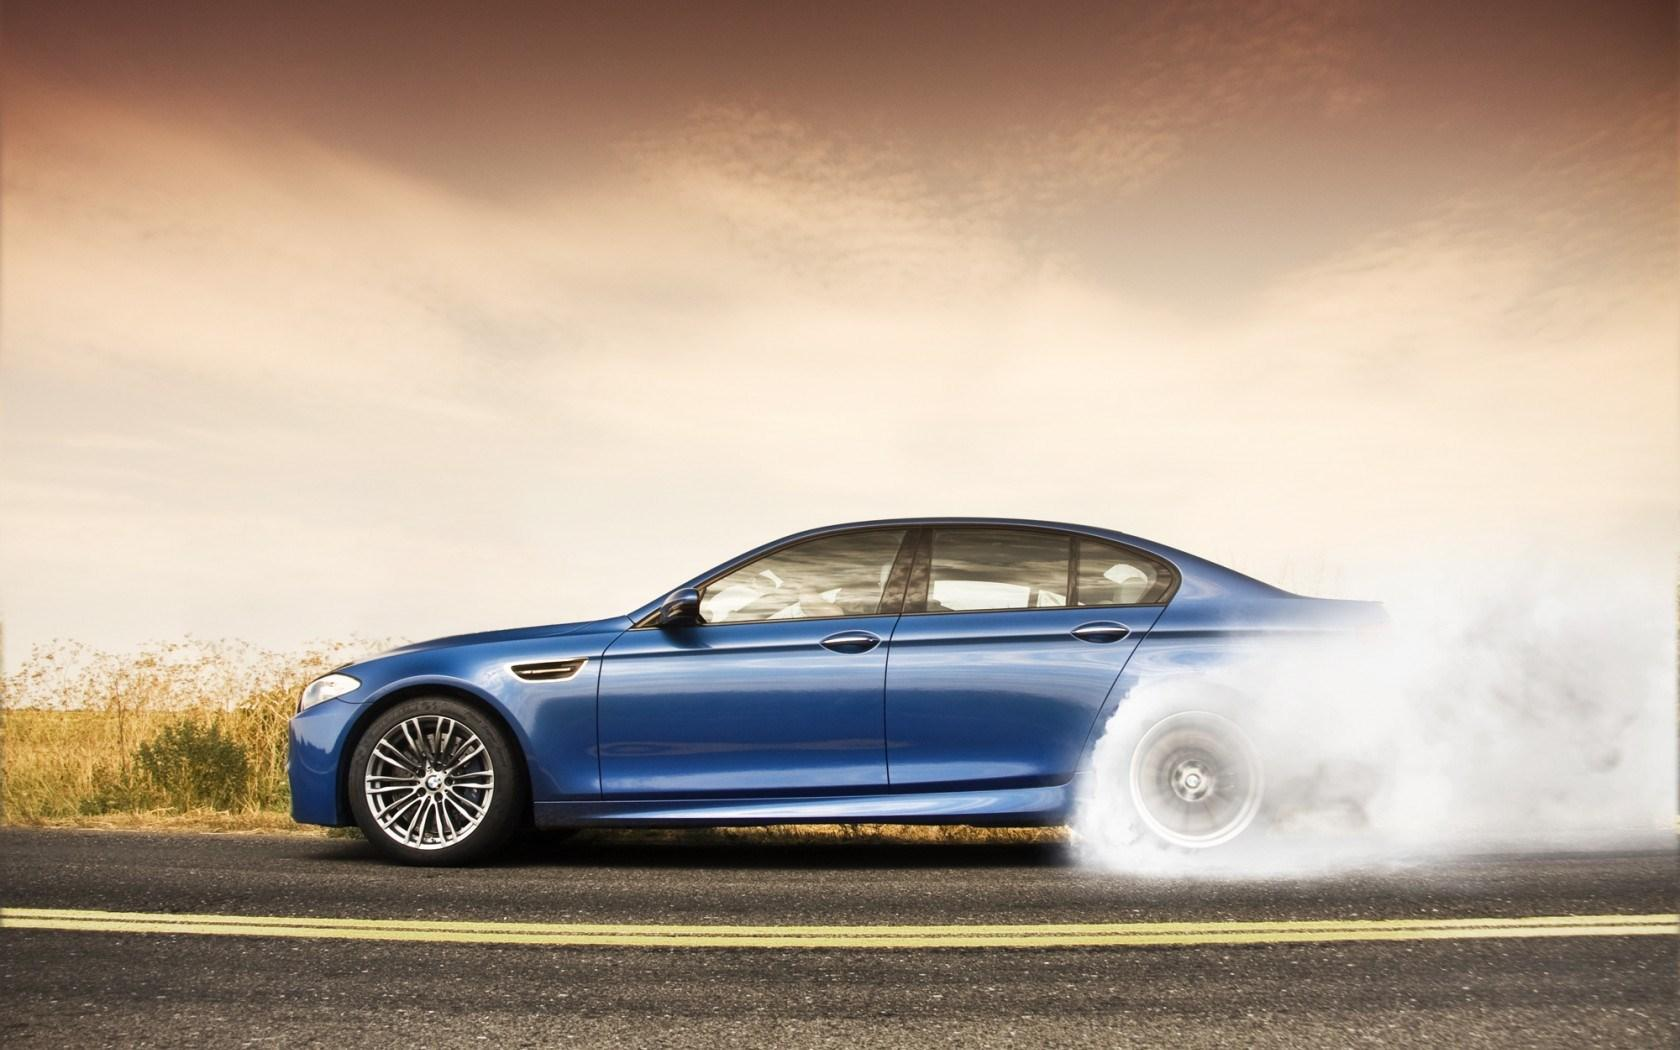 BMW M5 Wallpapers HD Download 1680x1050